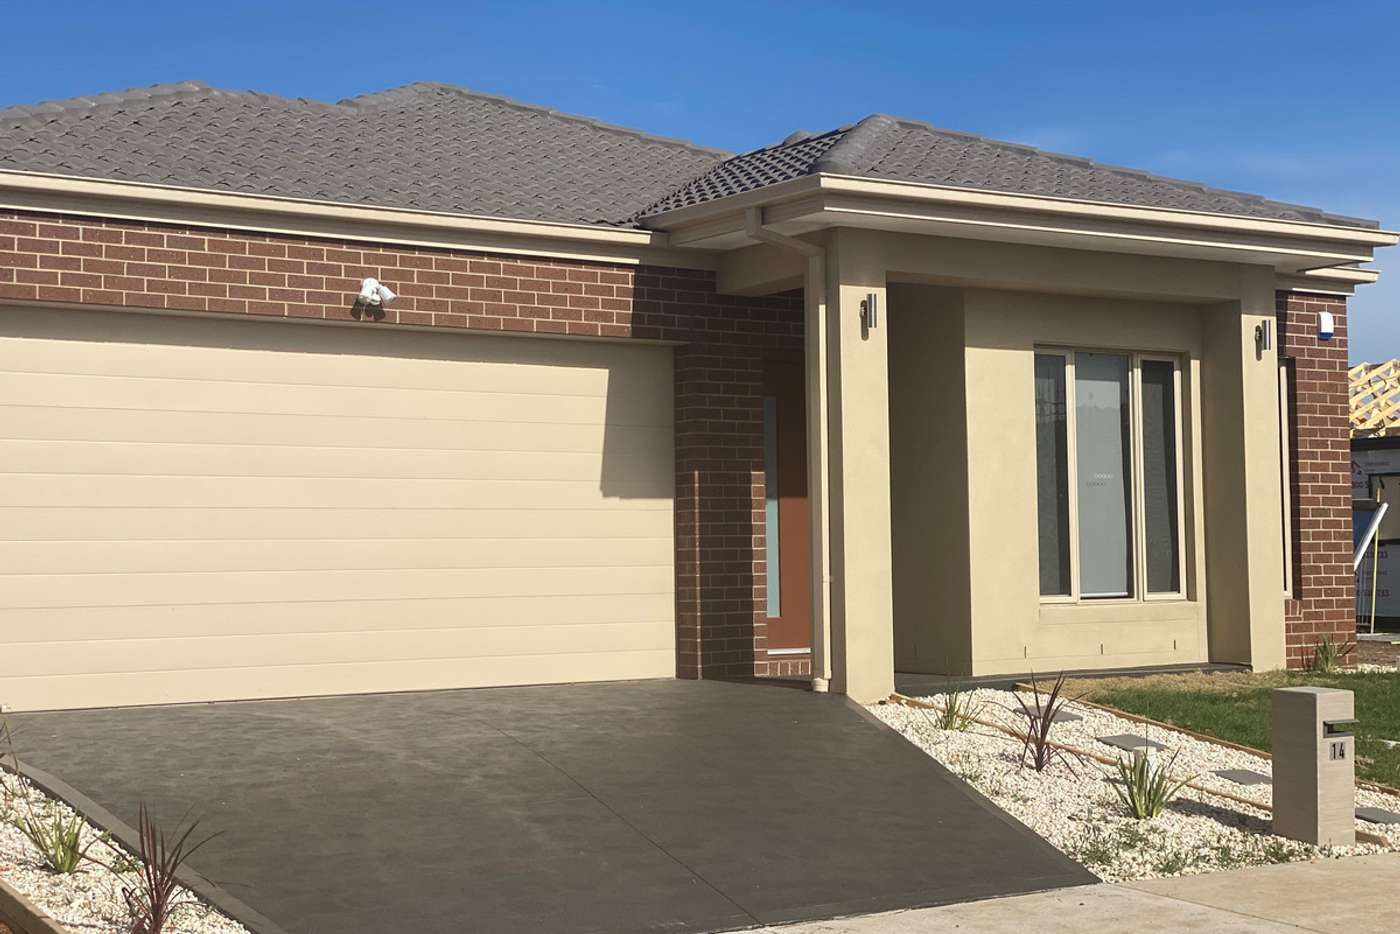 Main view of Homely house listing, 14 Arrowsmith Street, Tarneit VIC 3029